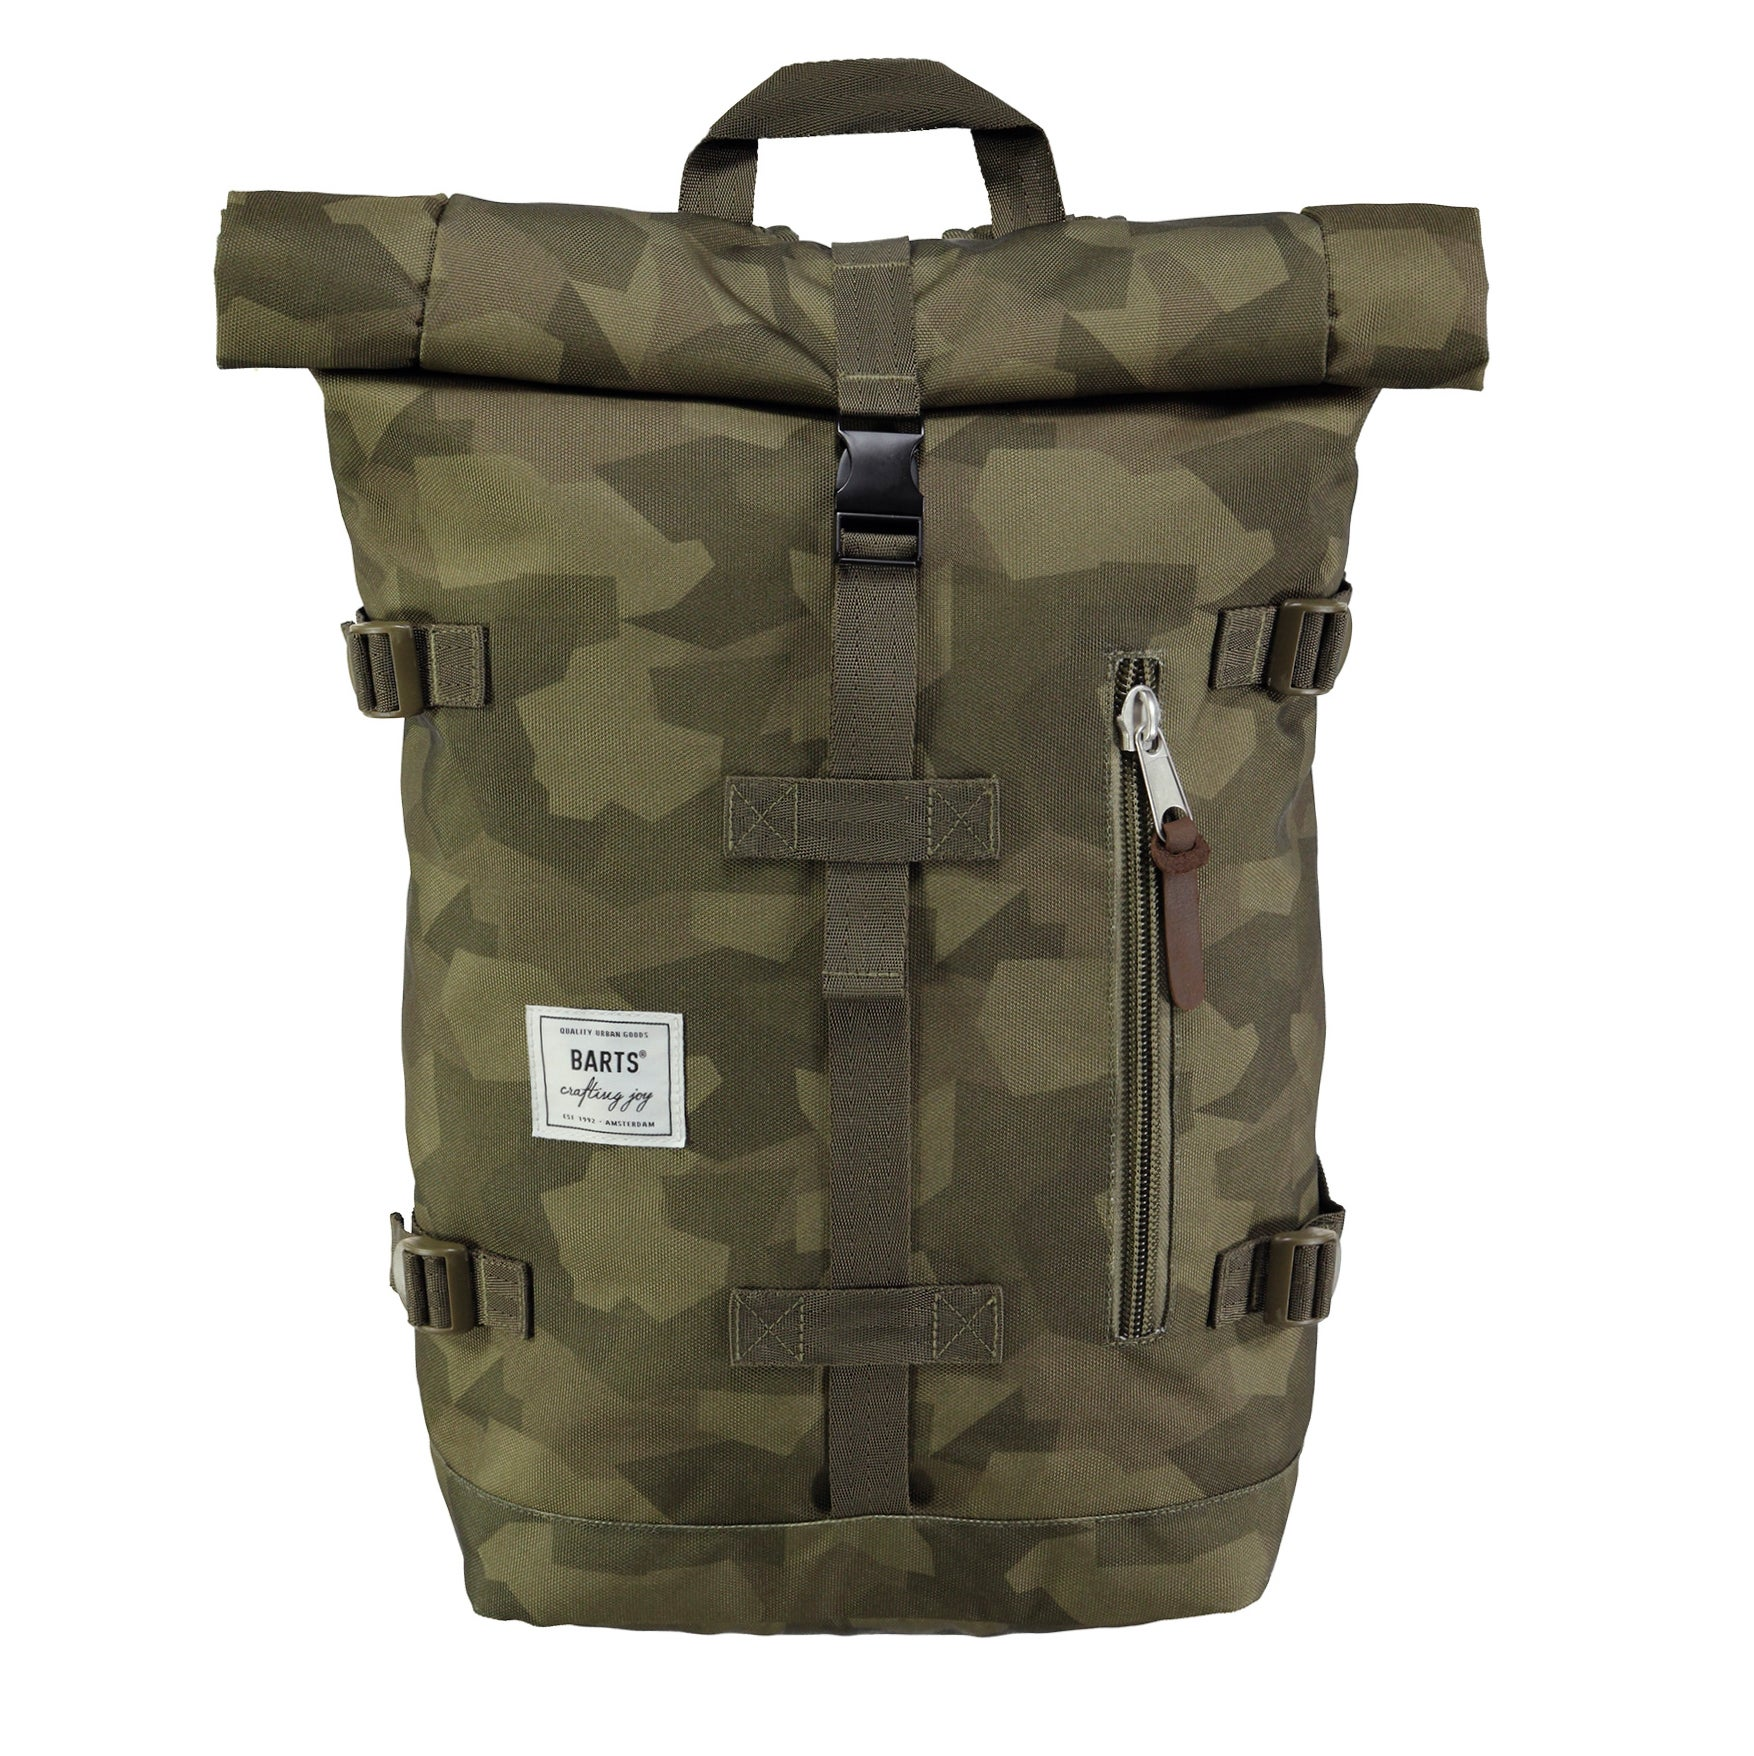 Barts Mountain Backpack - Camo Green